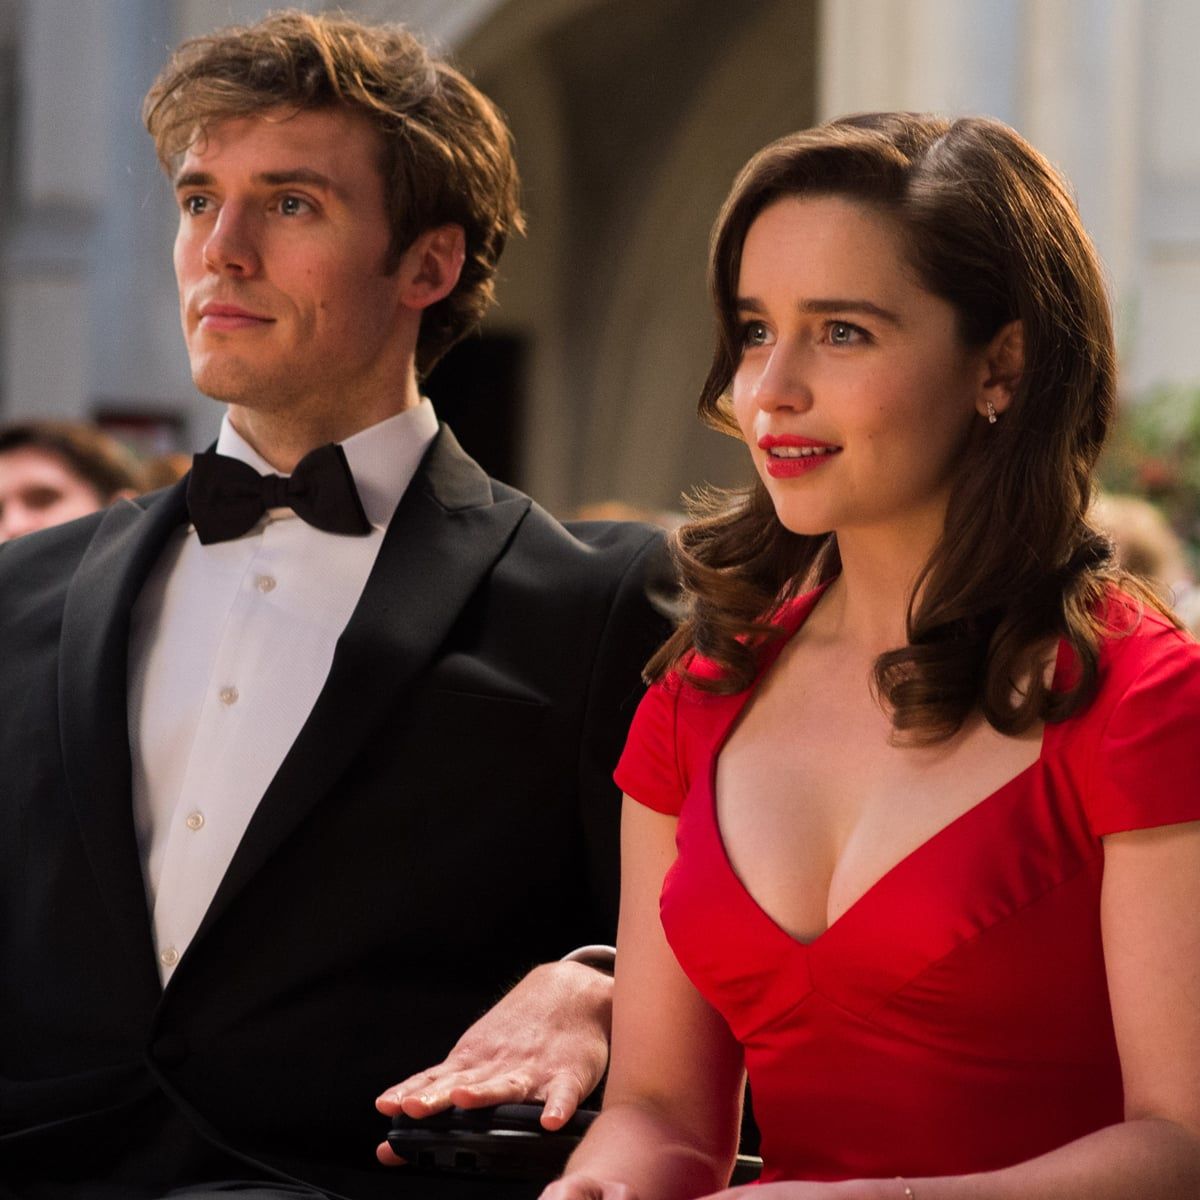 Me Before You Quotes Amusing Me Before You Quotes  Popsugar Celebrity Uk